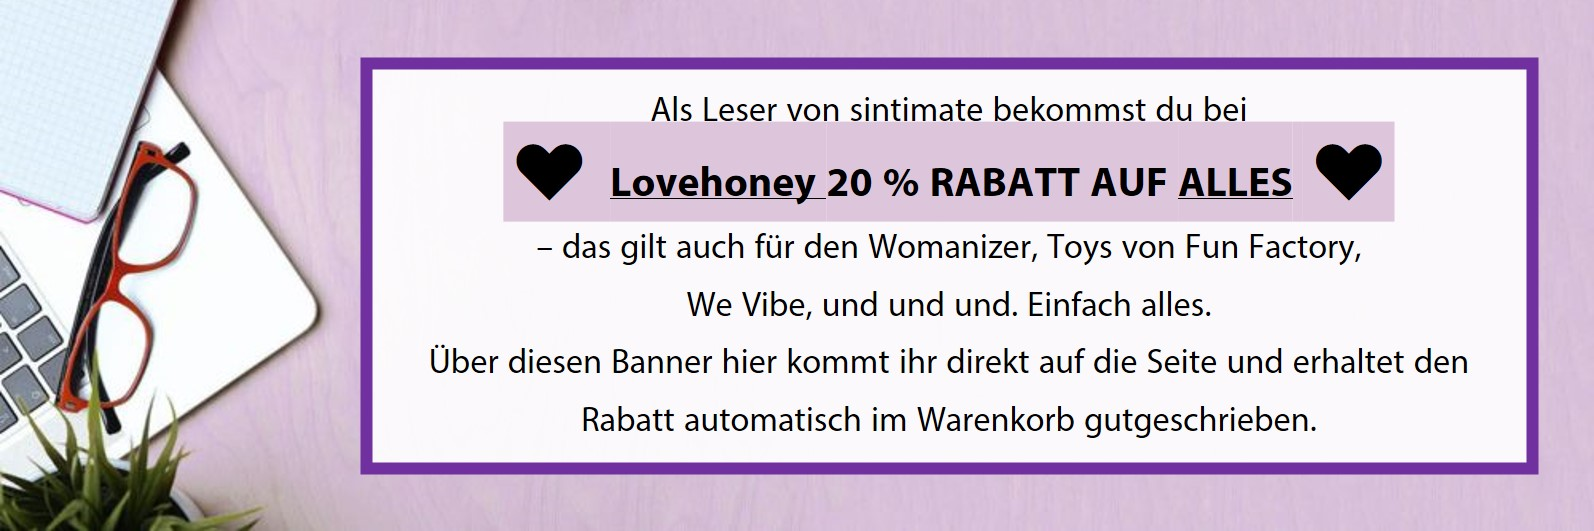 Black Friday Lovehoney, Lovehoney Angebot, Lovehoney Rabatt